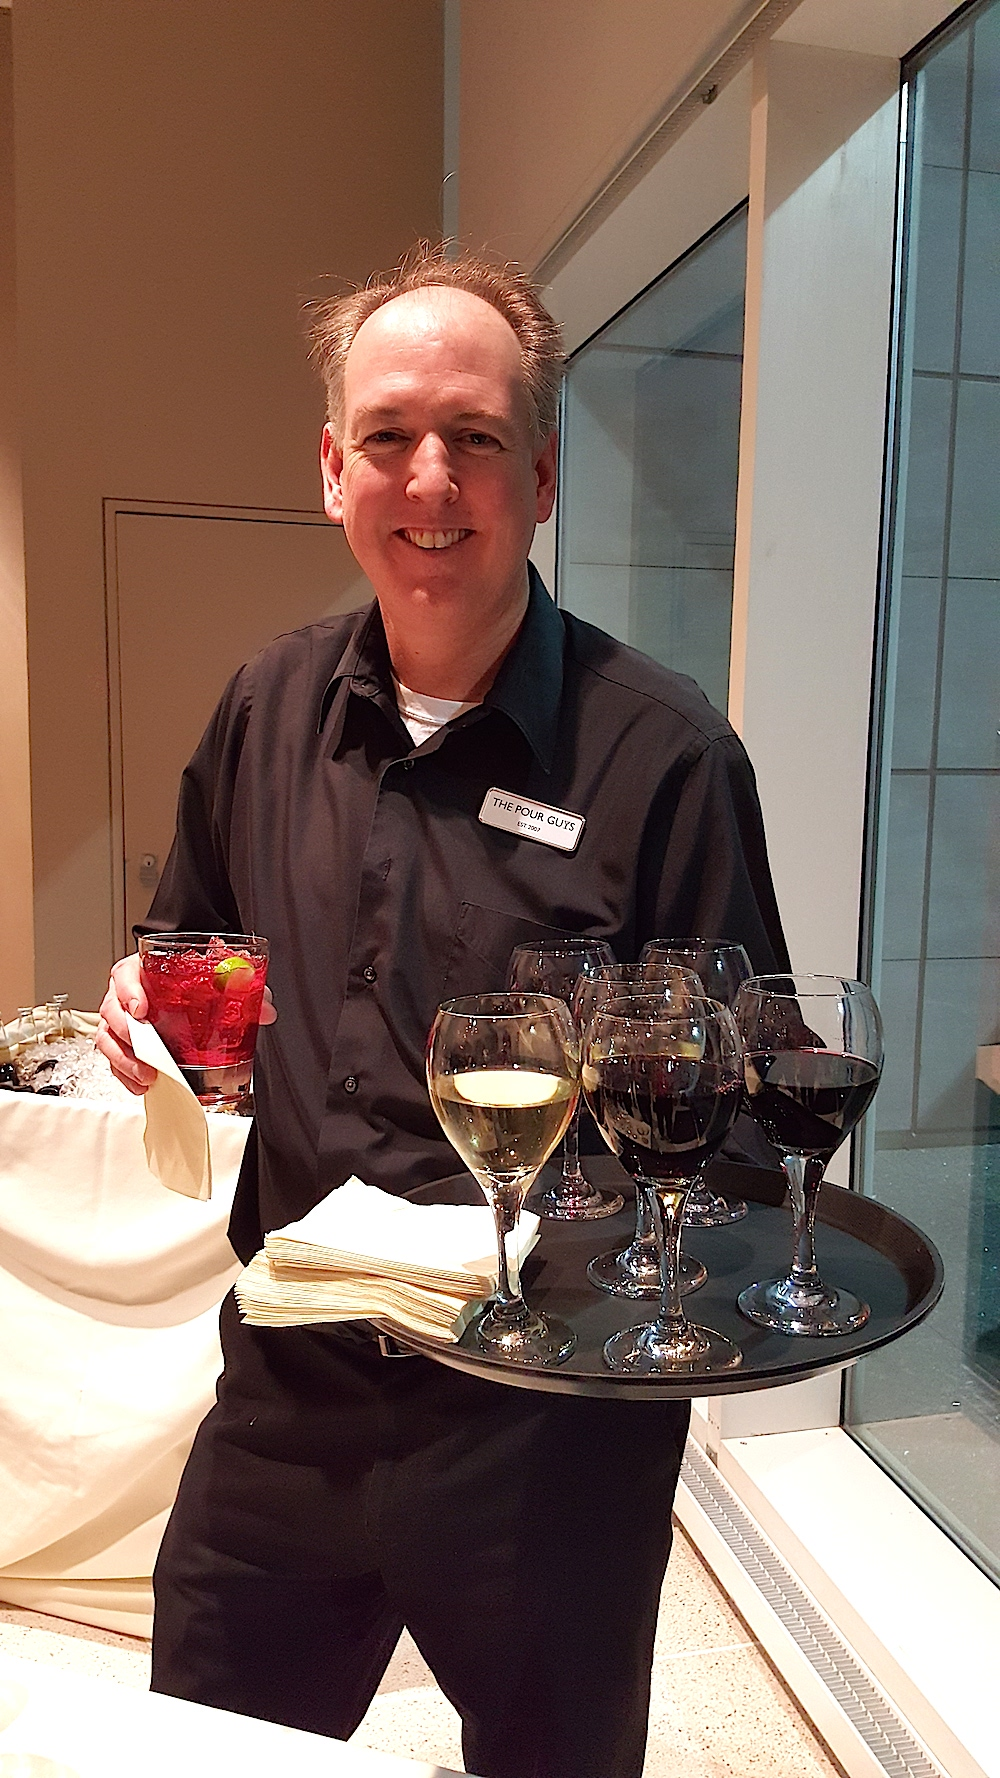 And Jerry Kruse of The Pour Guys bartending service.